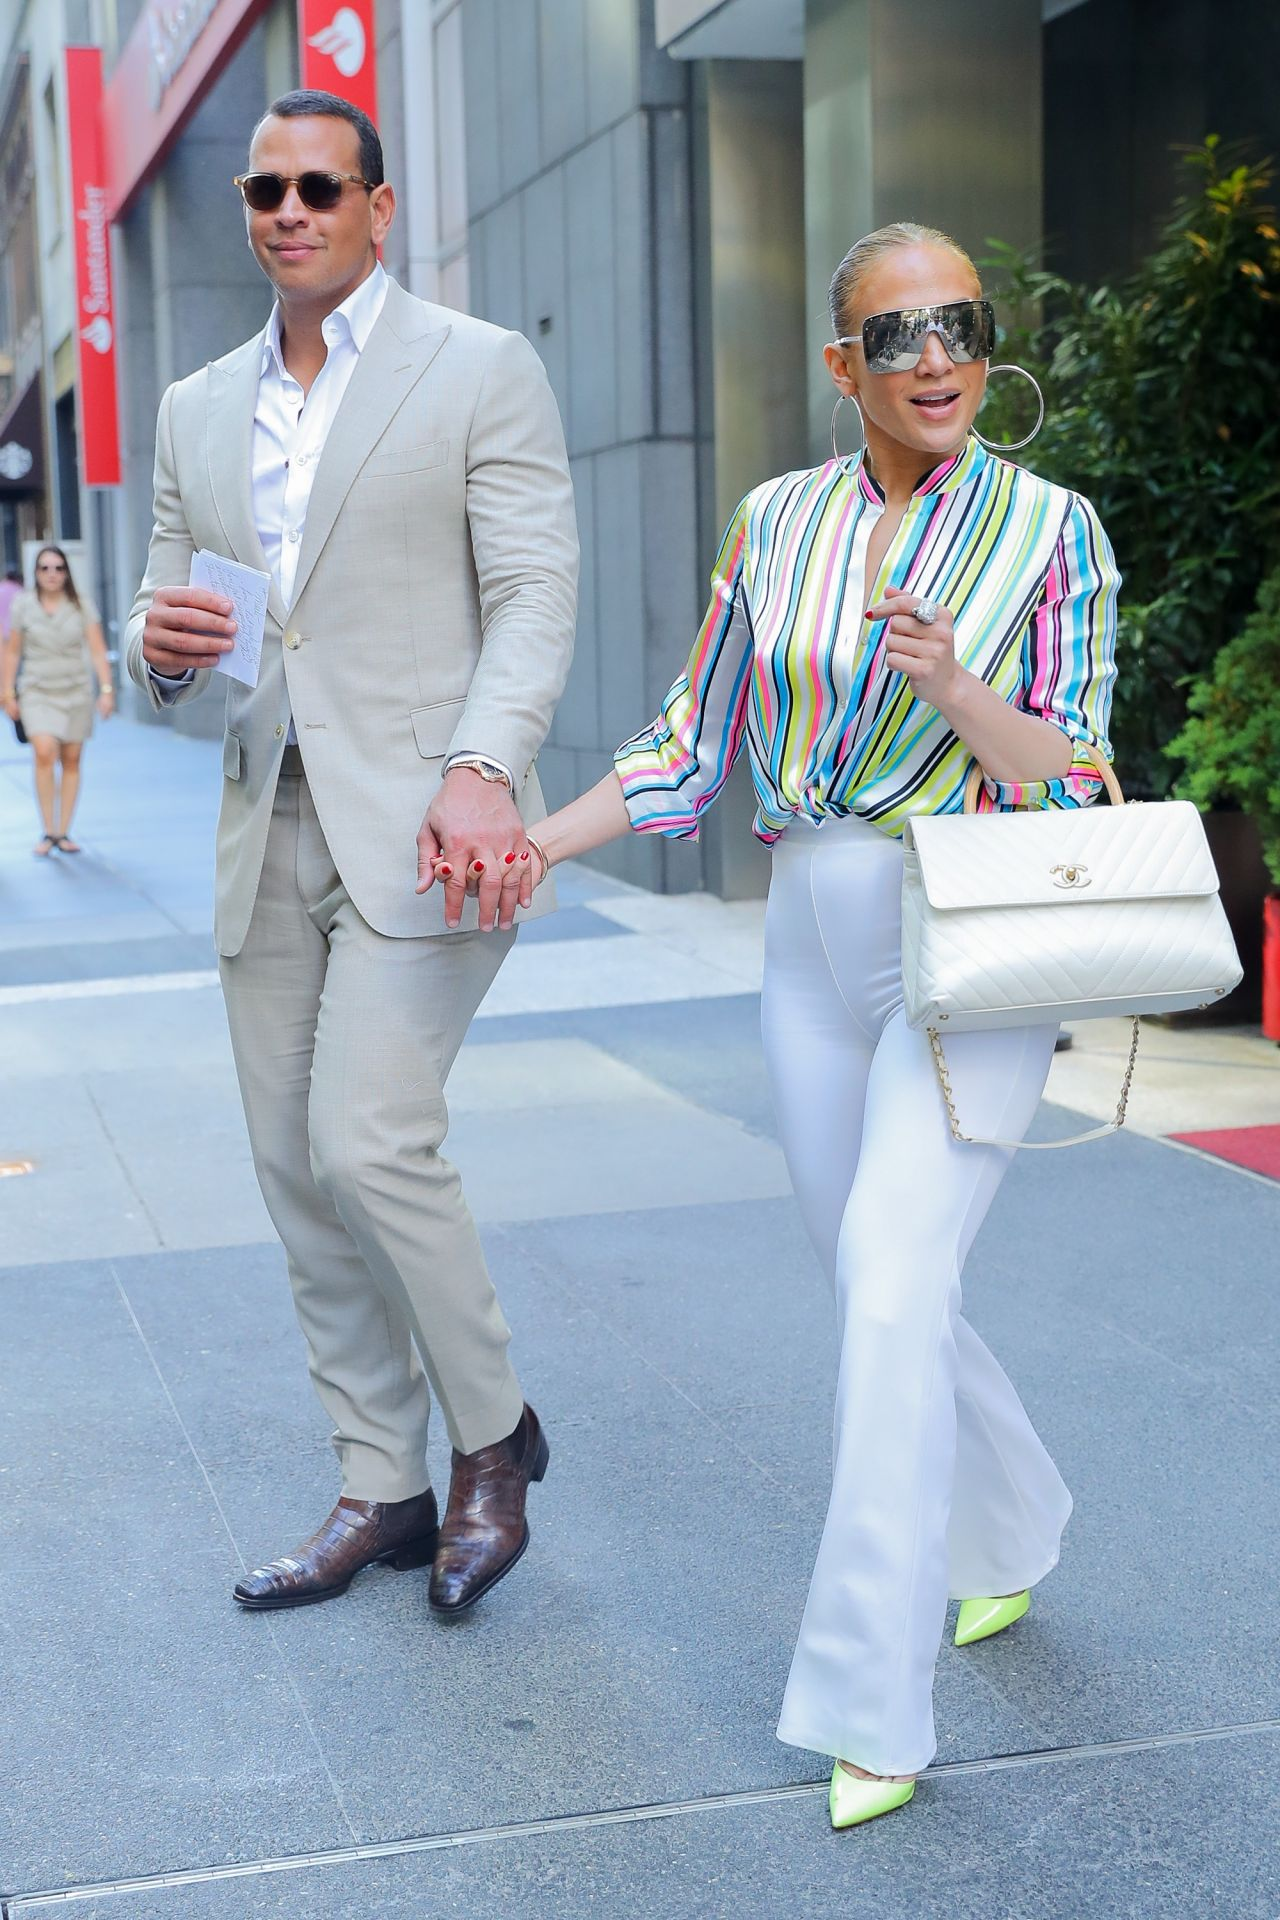 jennifer-lopez-and-alex-rodriguez-leaving-the-casa-lever-in-nyc-06-29-2018-12.jpg